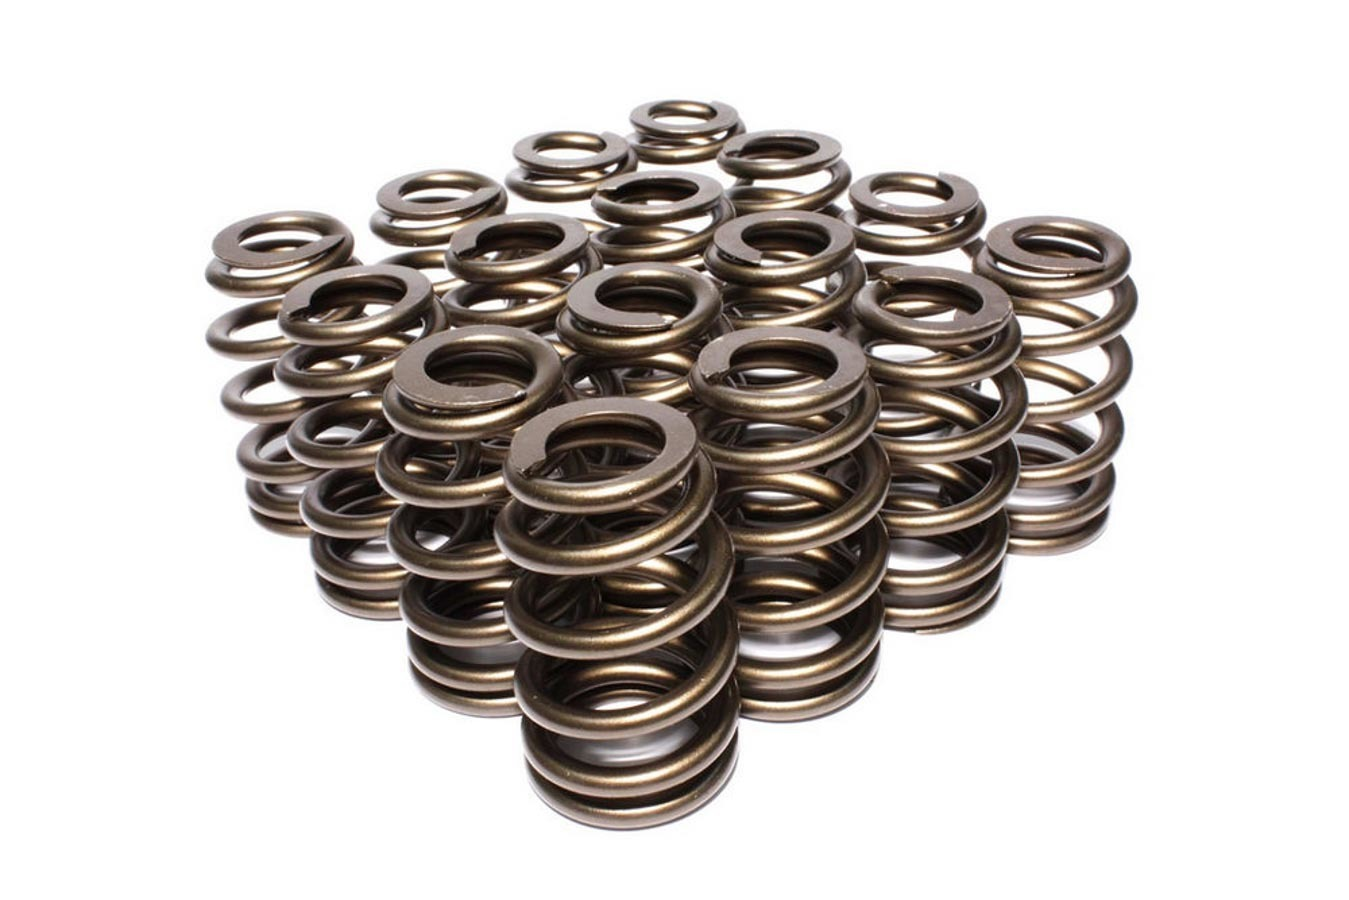 Comp Cams 26056-16 Valve Spring, Race Sportsman, Beehive Spring, 400 lb/in Spring Rate, 1.100 in Coil Bind, 1.454 in OD, Set of 16